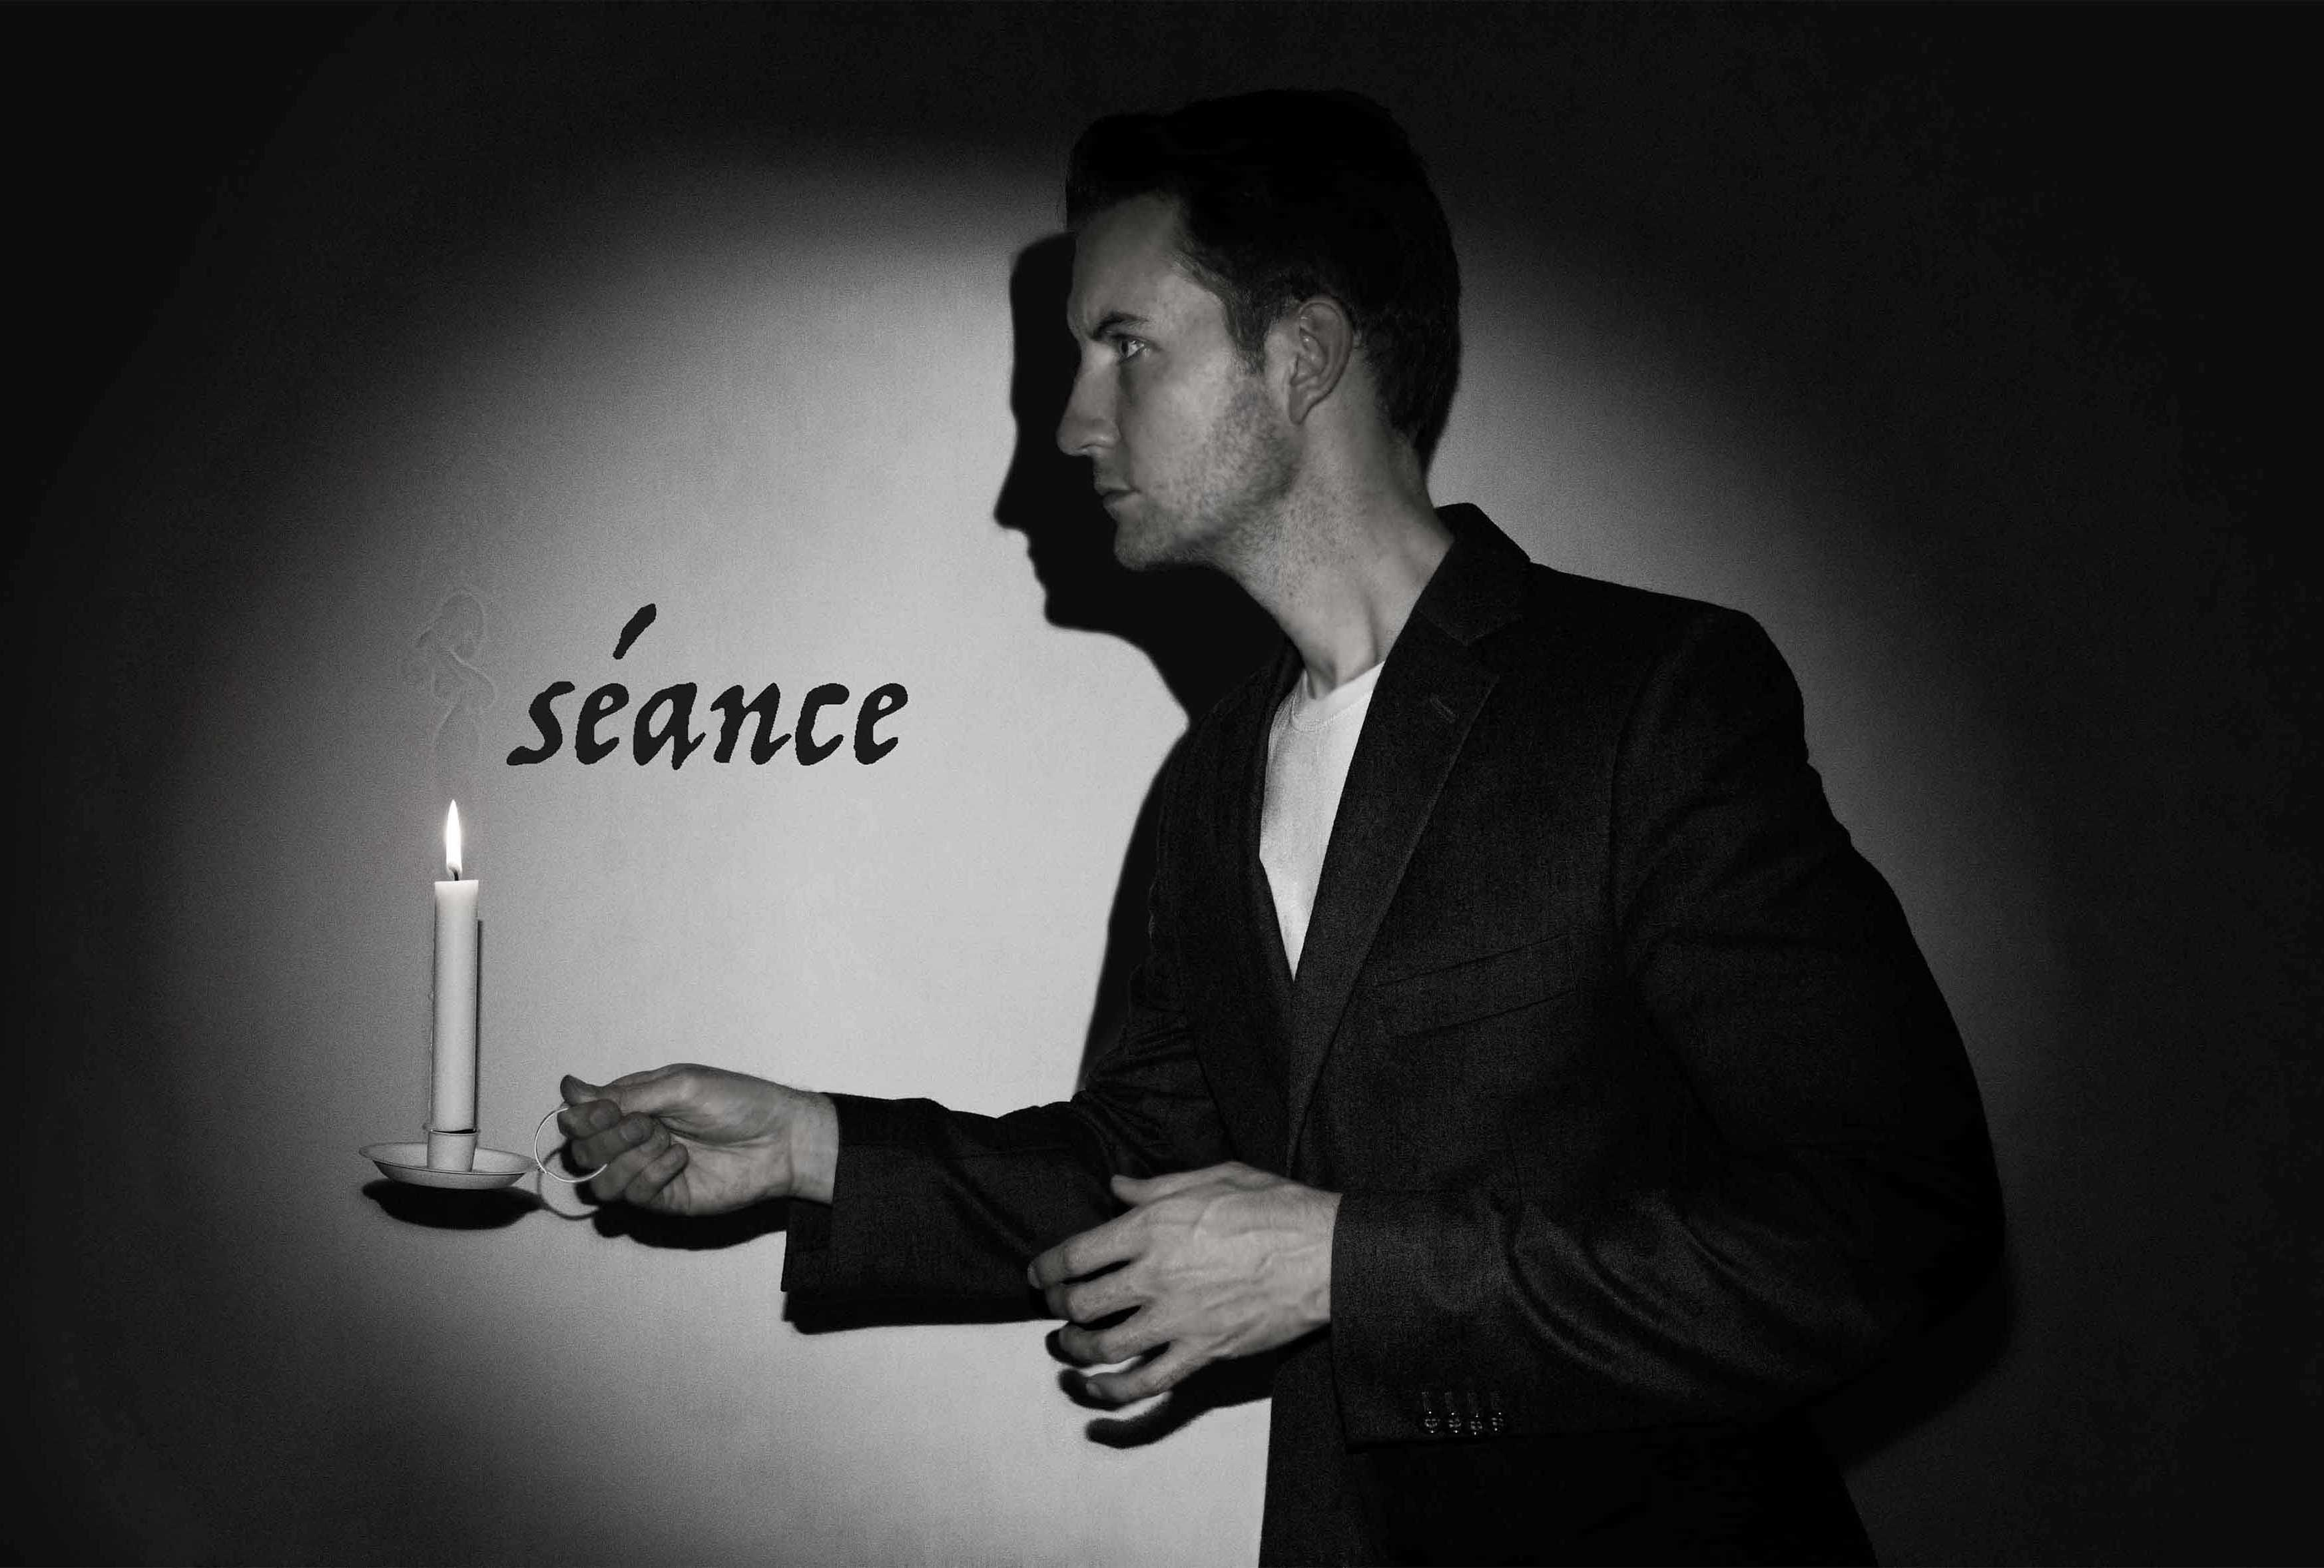 Spooky seance magic show with Christopher Howell holding the candle.